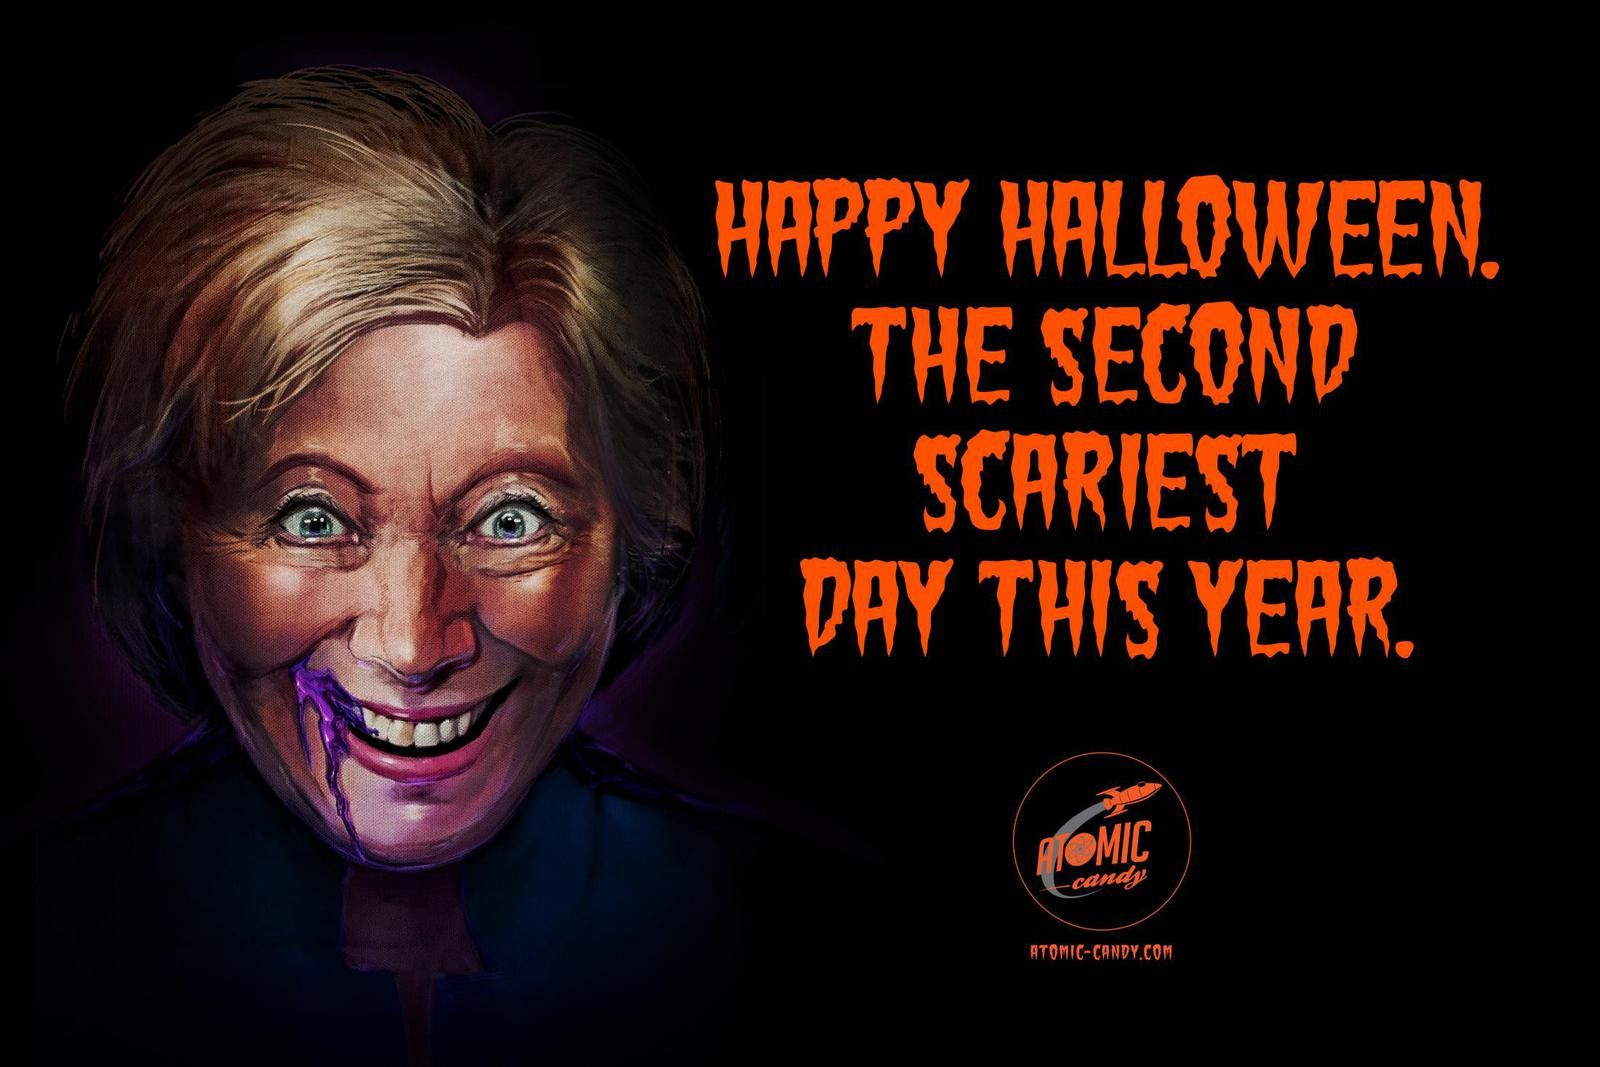 """The second scariest day of the year""/Halloween : Trump & Hilary - Atomic Candies I Agence :  Innocean, New York, Etats-Unis (octobre 2016)"